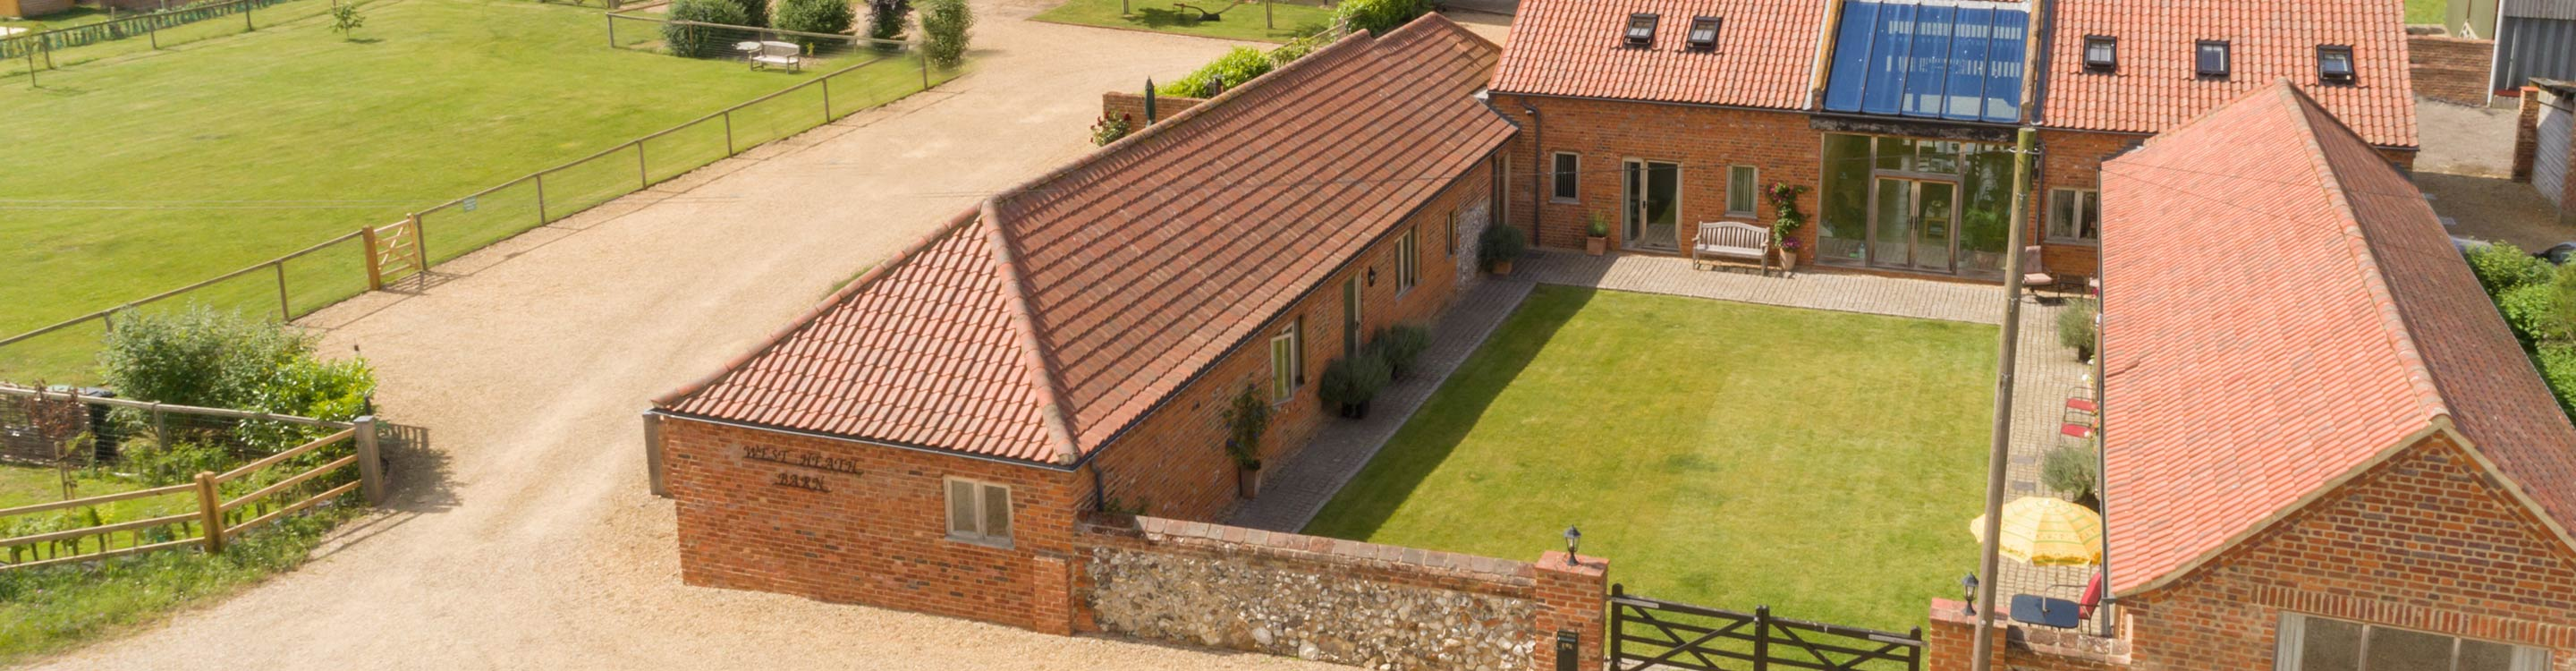 Self-Catering Cottage at West Heath Barn near King's Lynn, Norfolk